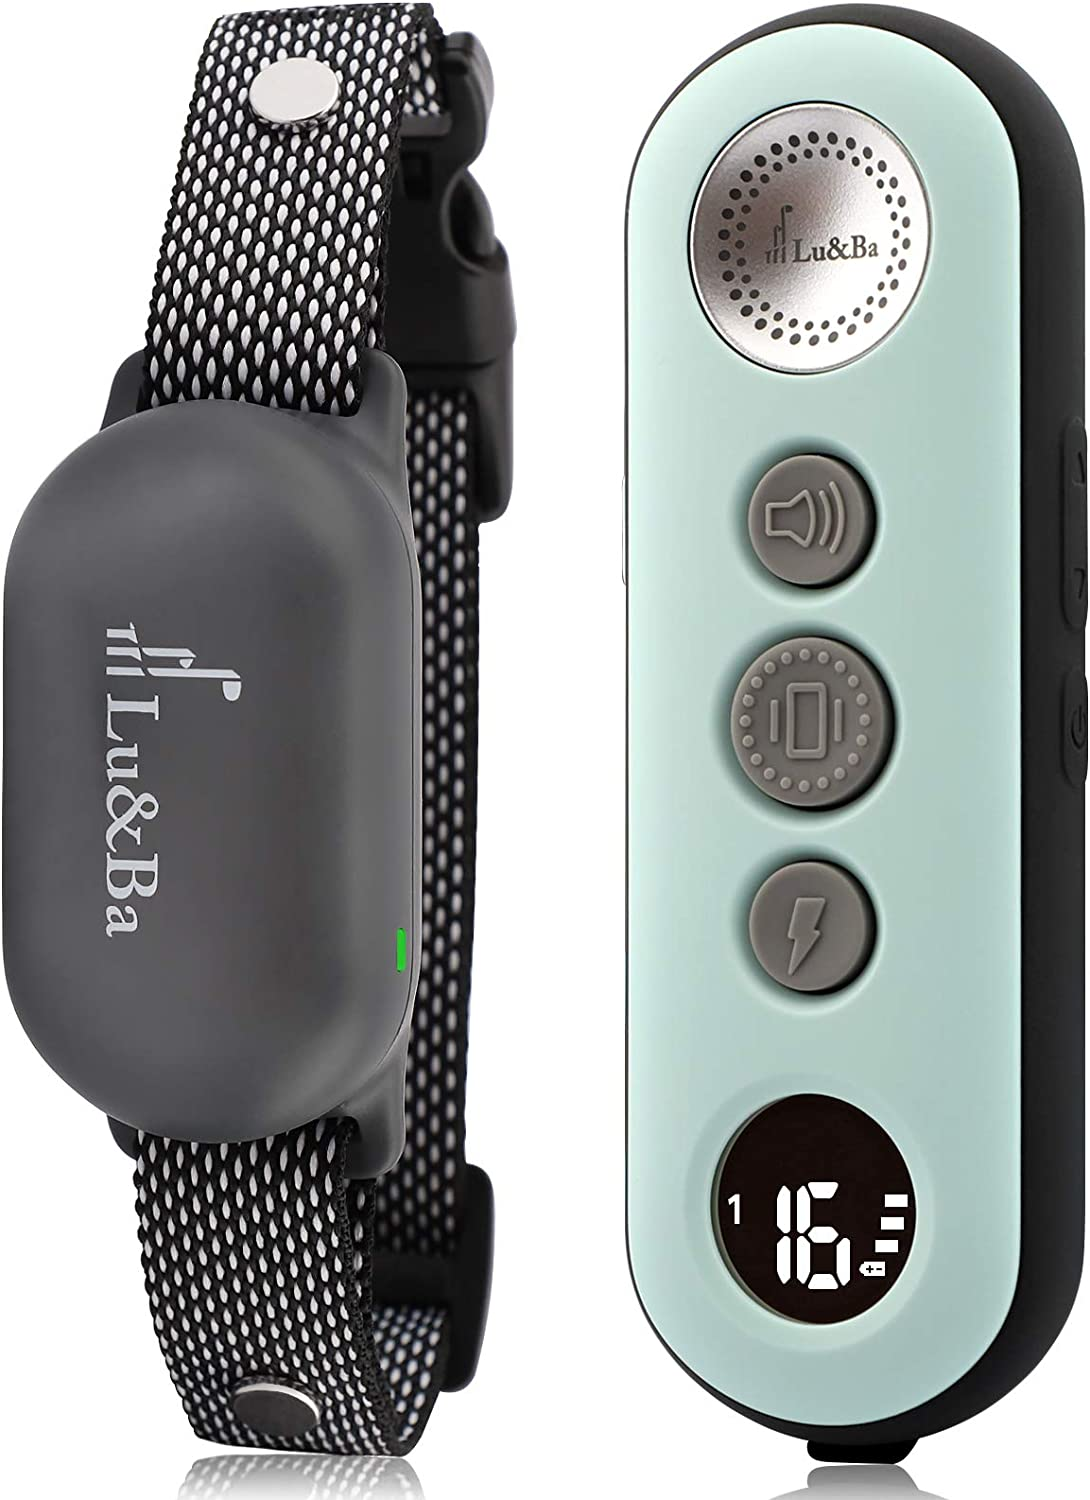 Lu&Ba Dog Shock Collar,3000ft Dog Training Collar with Remote Rechargeable Ipx7 Waterproof E Collar with 3 Safe Mode Beep Vibration and 16 Shock Level for 10-110lb Small Medium Large Dogs